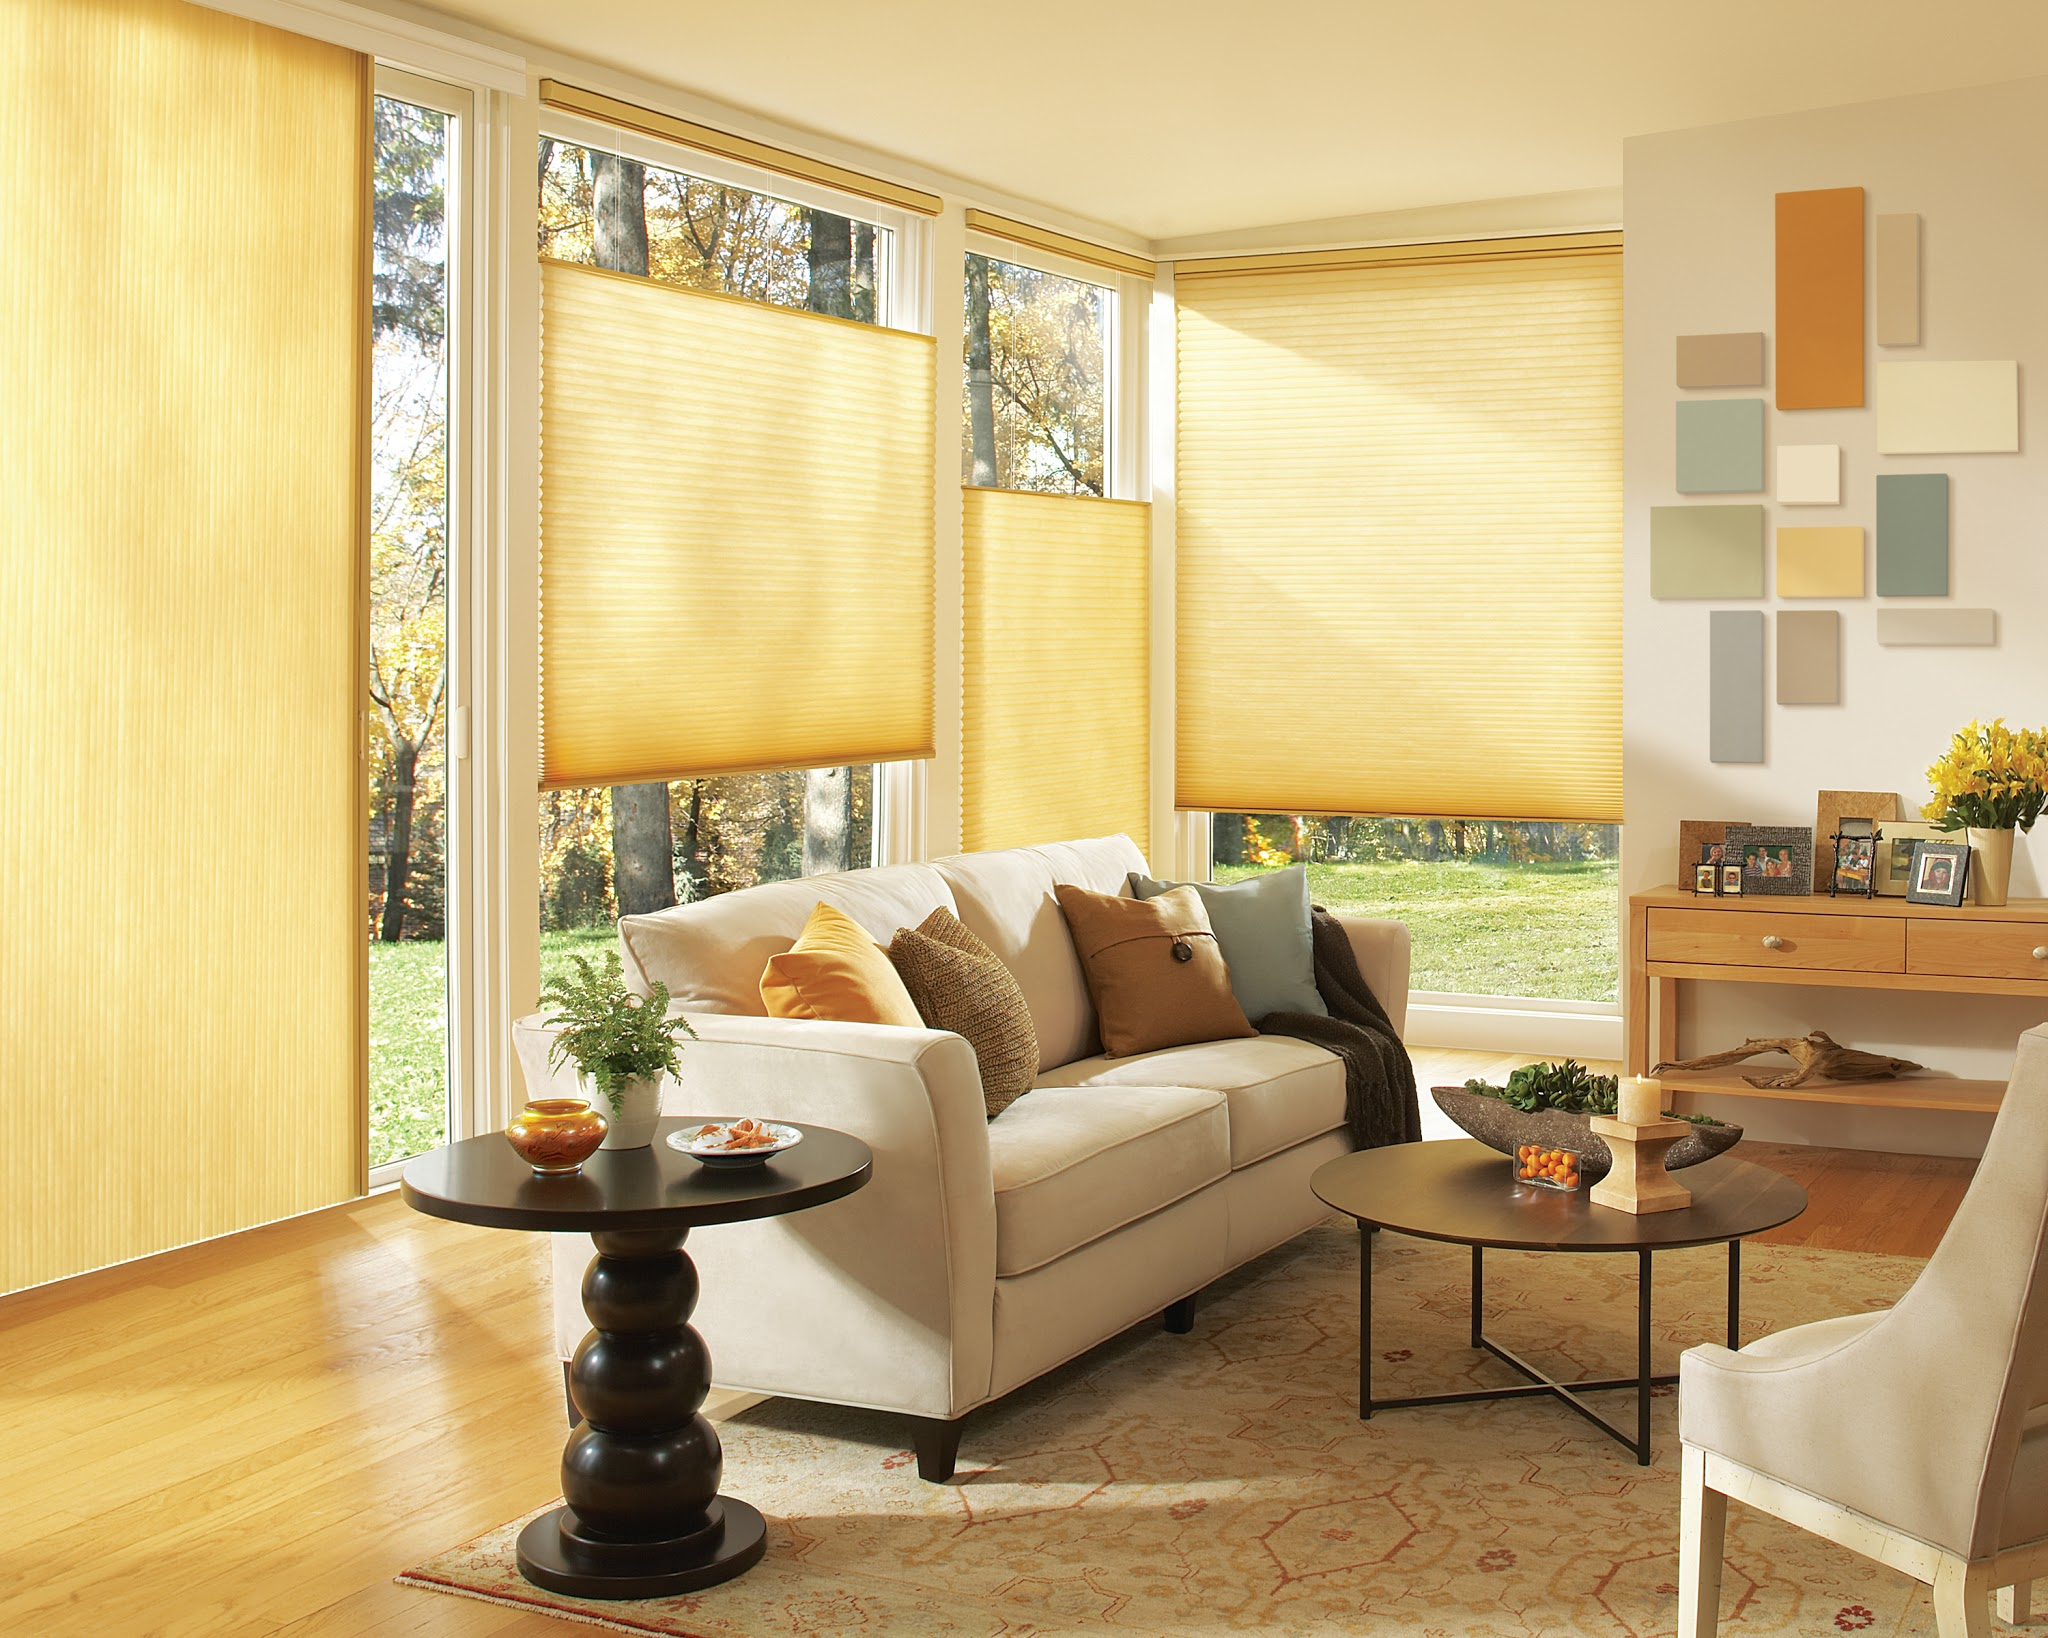 Window Accents And Flooring Reviews, Ratings | Shades & Blinds near 284 U.S. 206 Ste. 1 , Hillsborough Township NJ